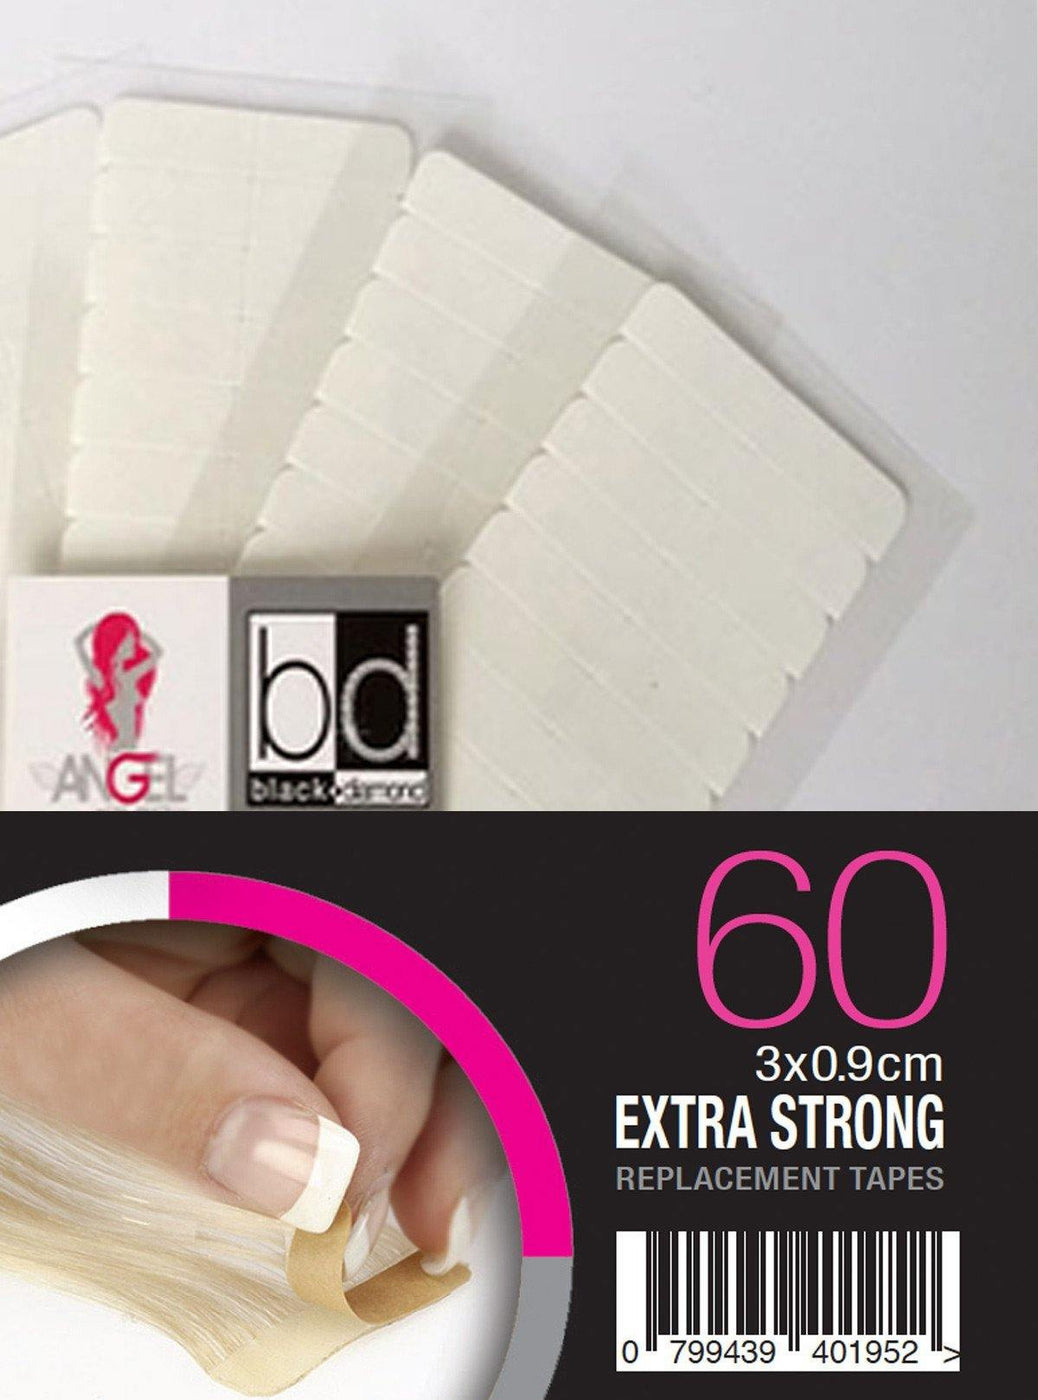 Angel Replacement Tapes Slimline Extra Strong 3x0.9cm 60pk - Norris Hair & Beauty